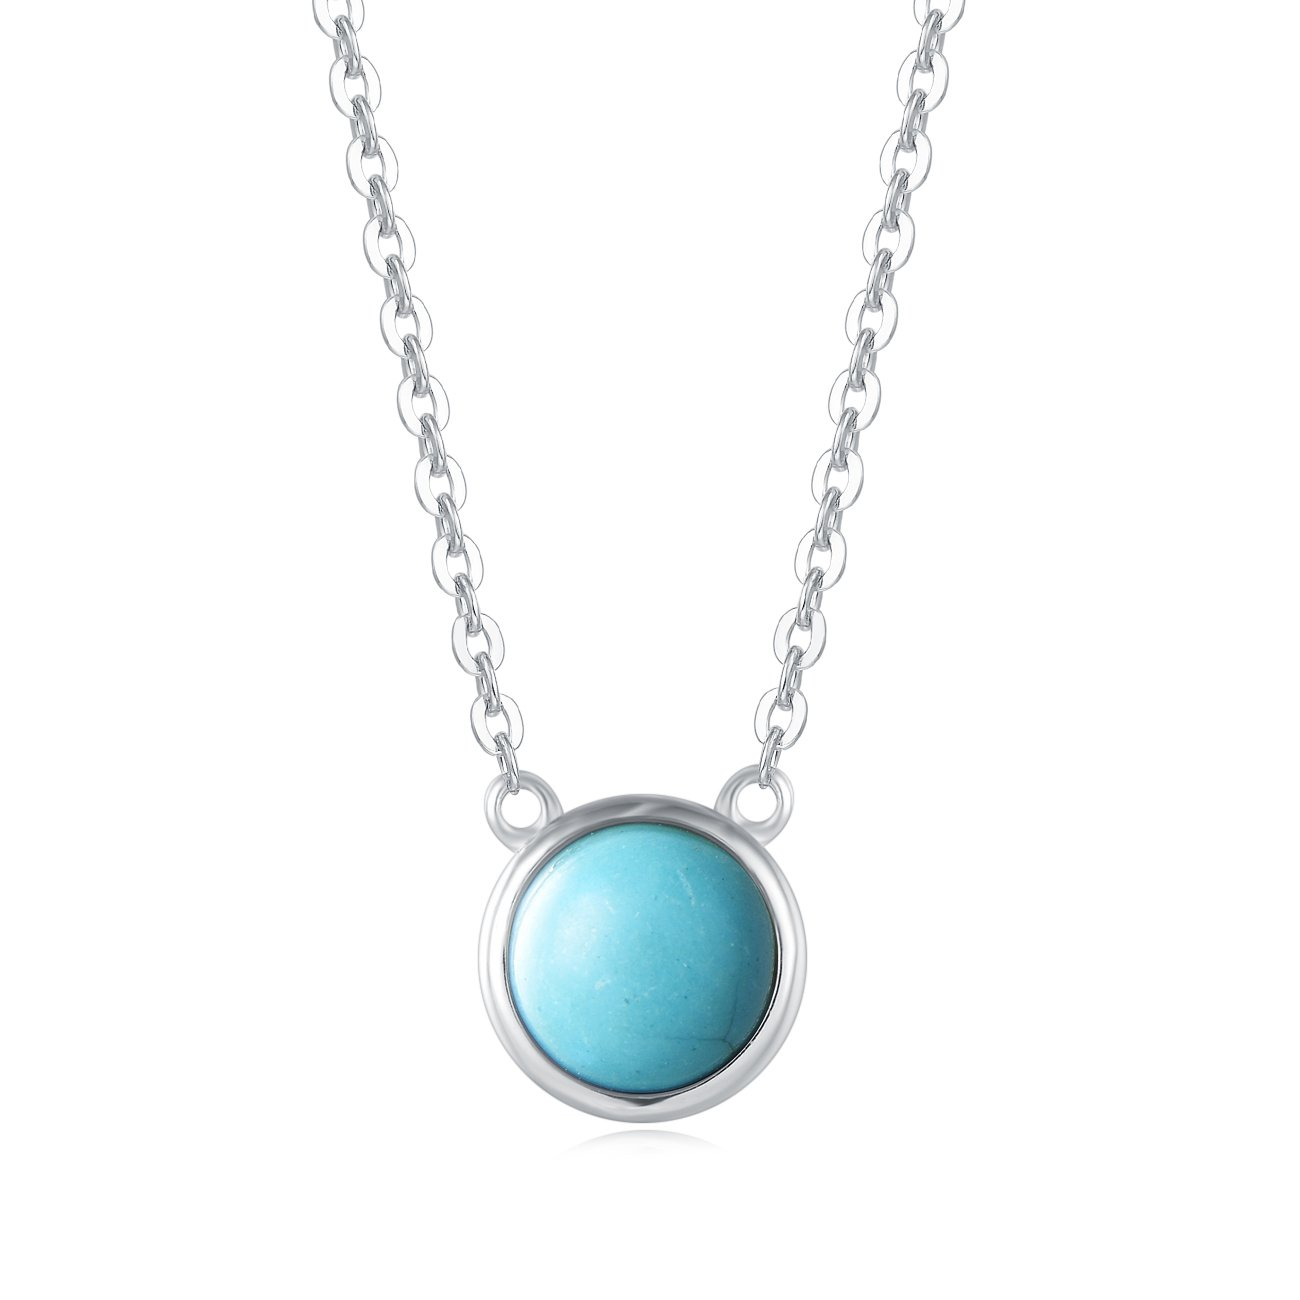 Carleen 18K White Gold Plated 925 Sterling Silver Round Created Turquoise Dainty Pendant Necklace for Women Girls with Silver Chain 16''+2'' Extender